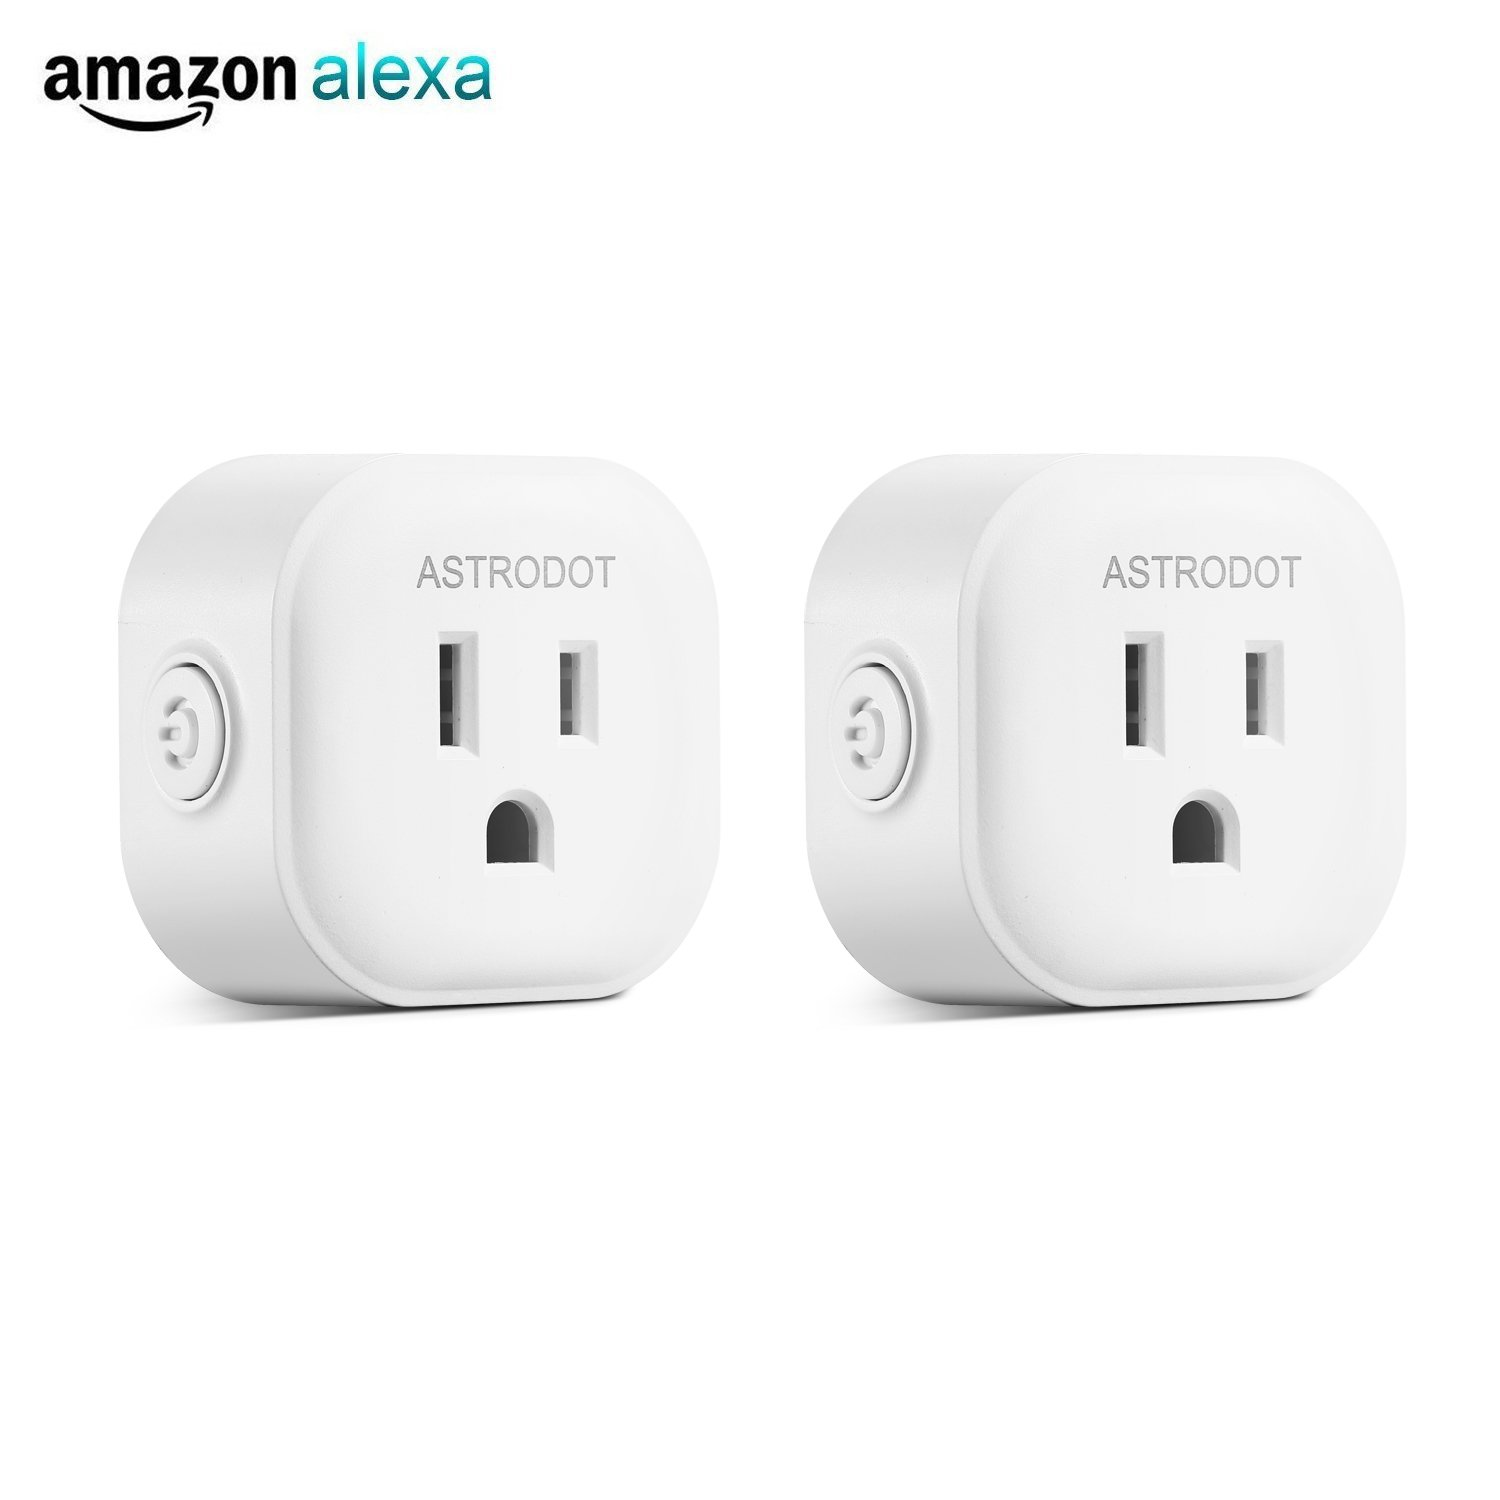 Wifi Smart Plug Mini, Astrodot Smart Home Power Control Socket, Remote Control Your Household Equipment from Everywhere, No Hub Required, Compatible with Alexa, Echo Dot & Google Home (2 Packs)